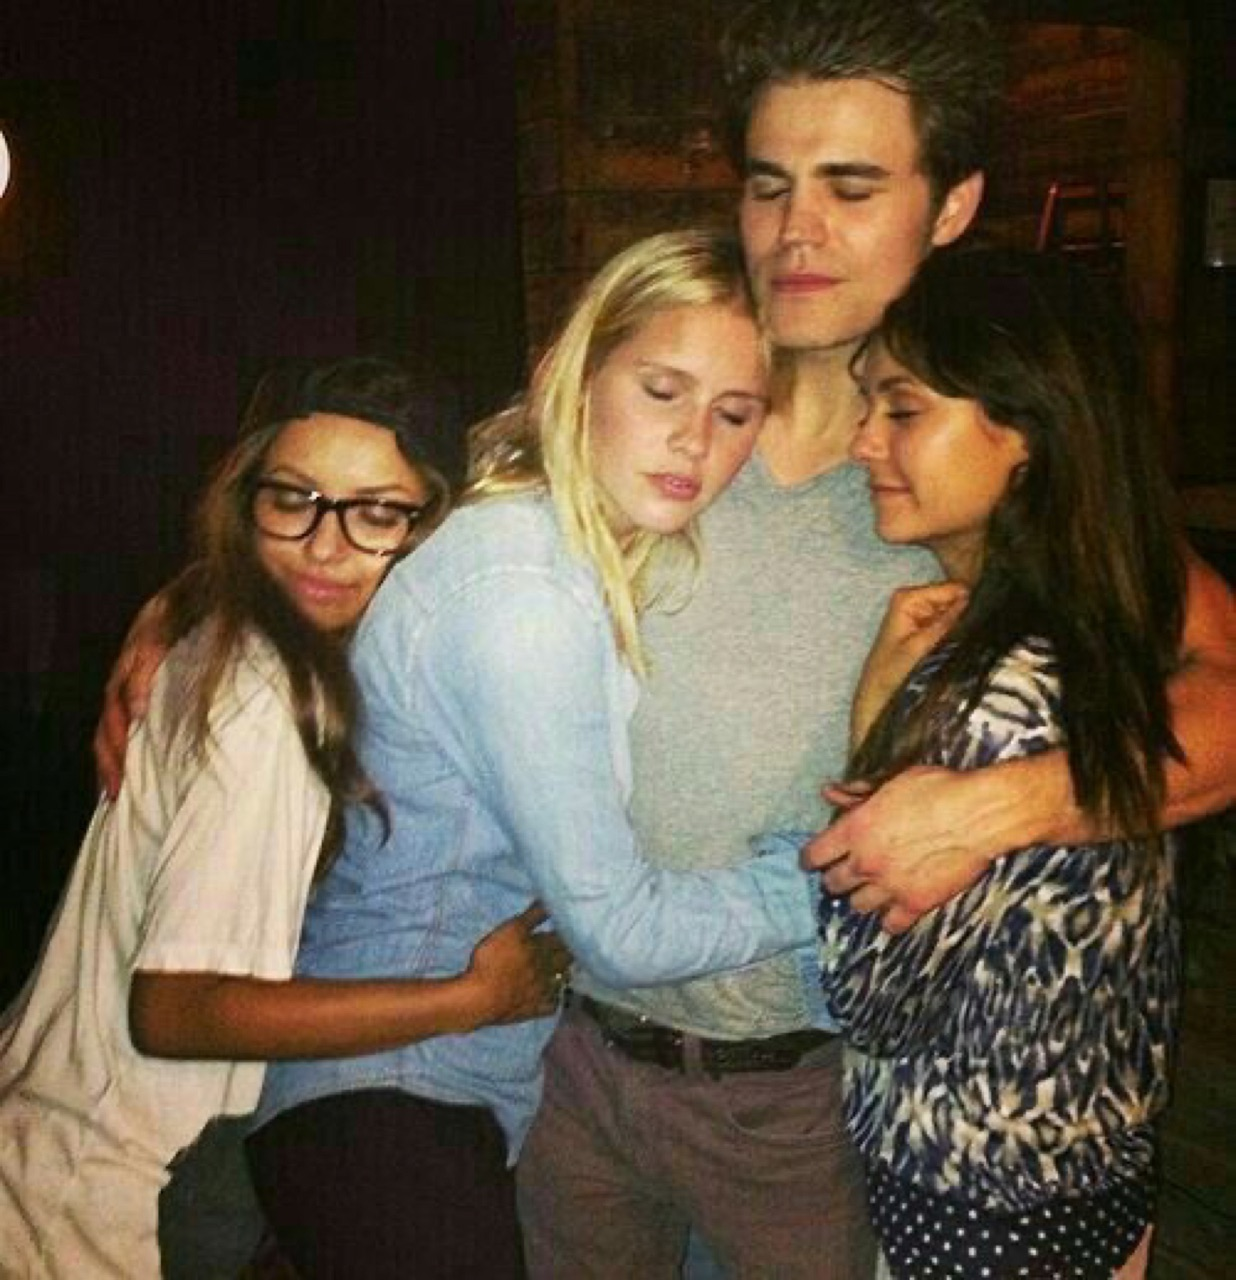 paul wesley, Nina Dobrev, and claire holt image